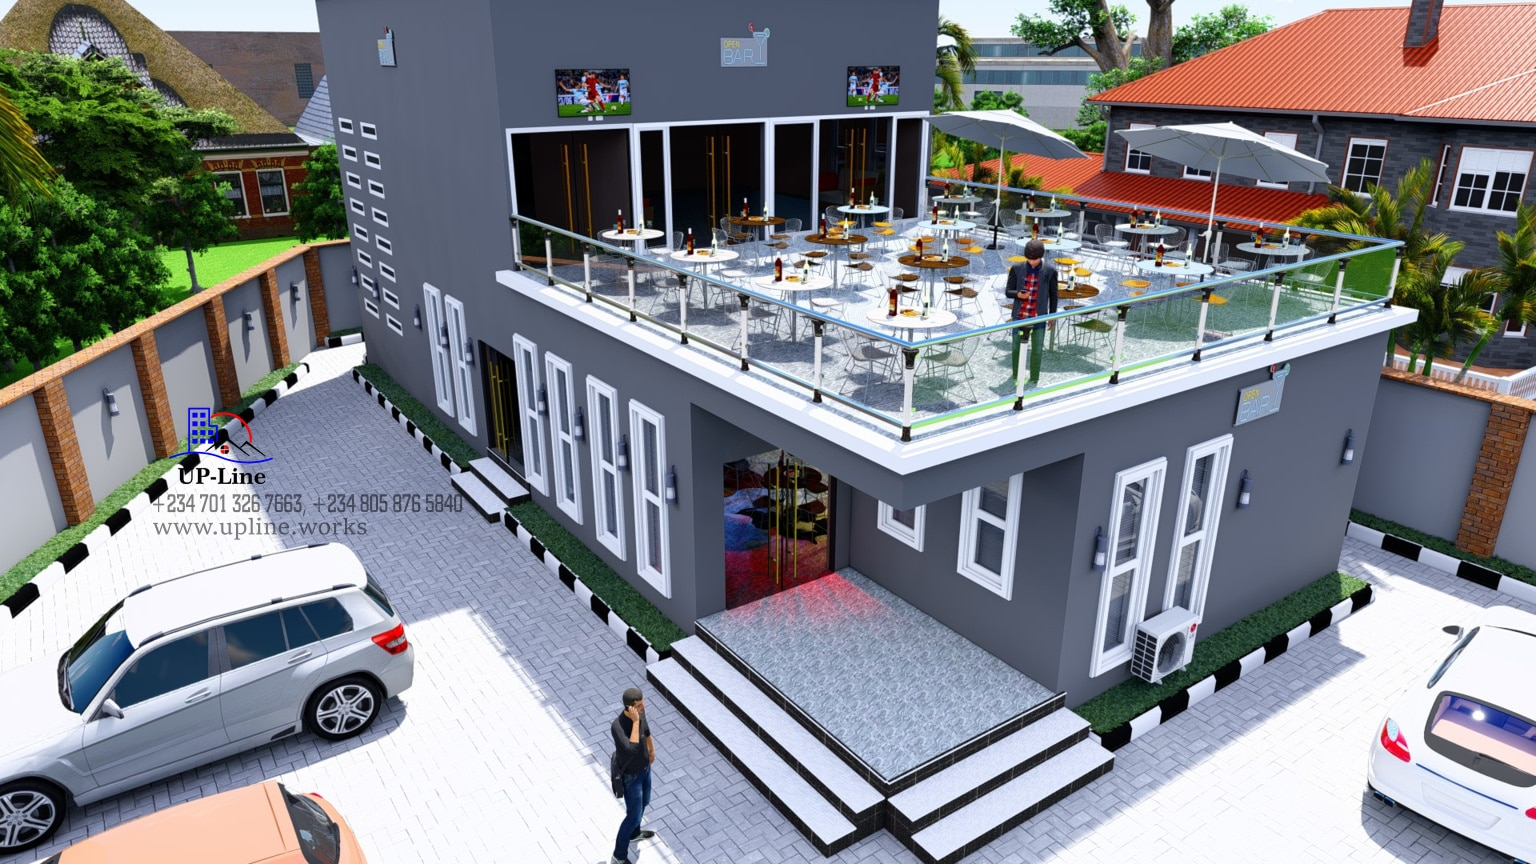 Aerial view of bar and club design by Upline works - Top architectural company in Nigeria